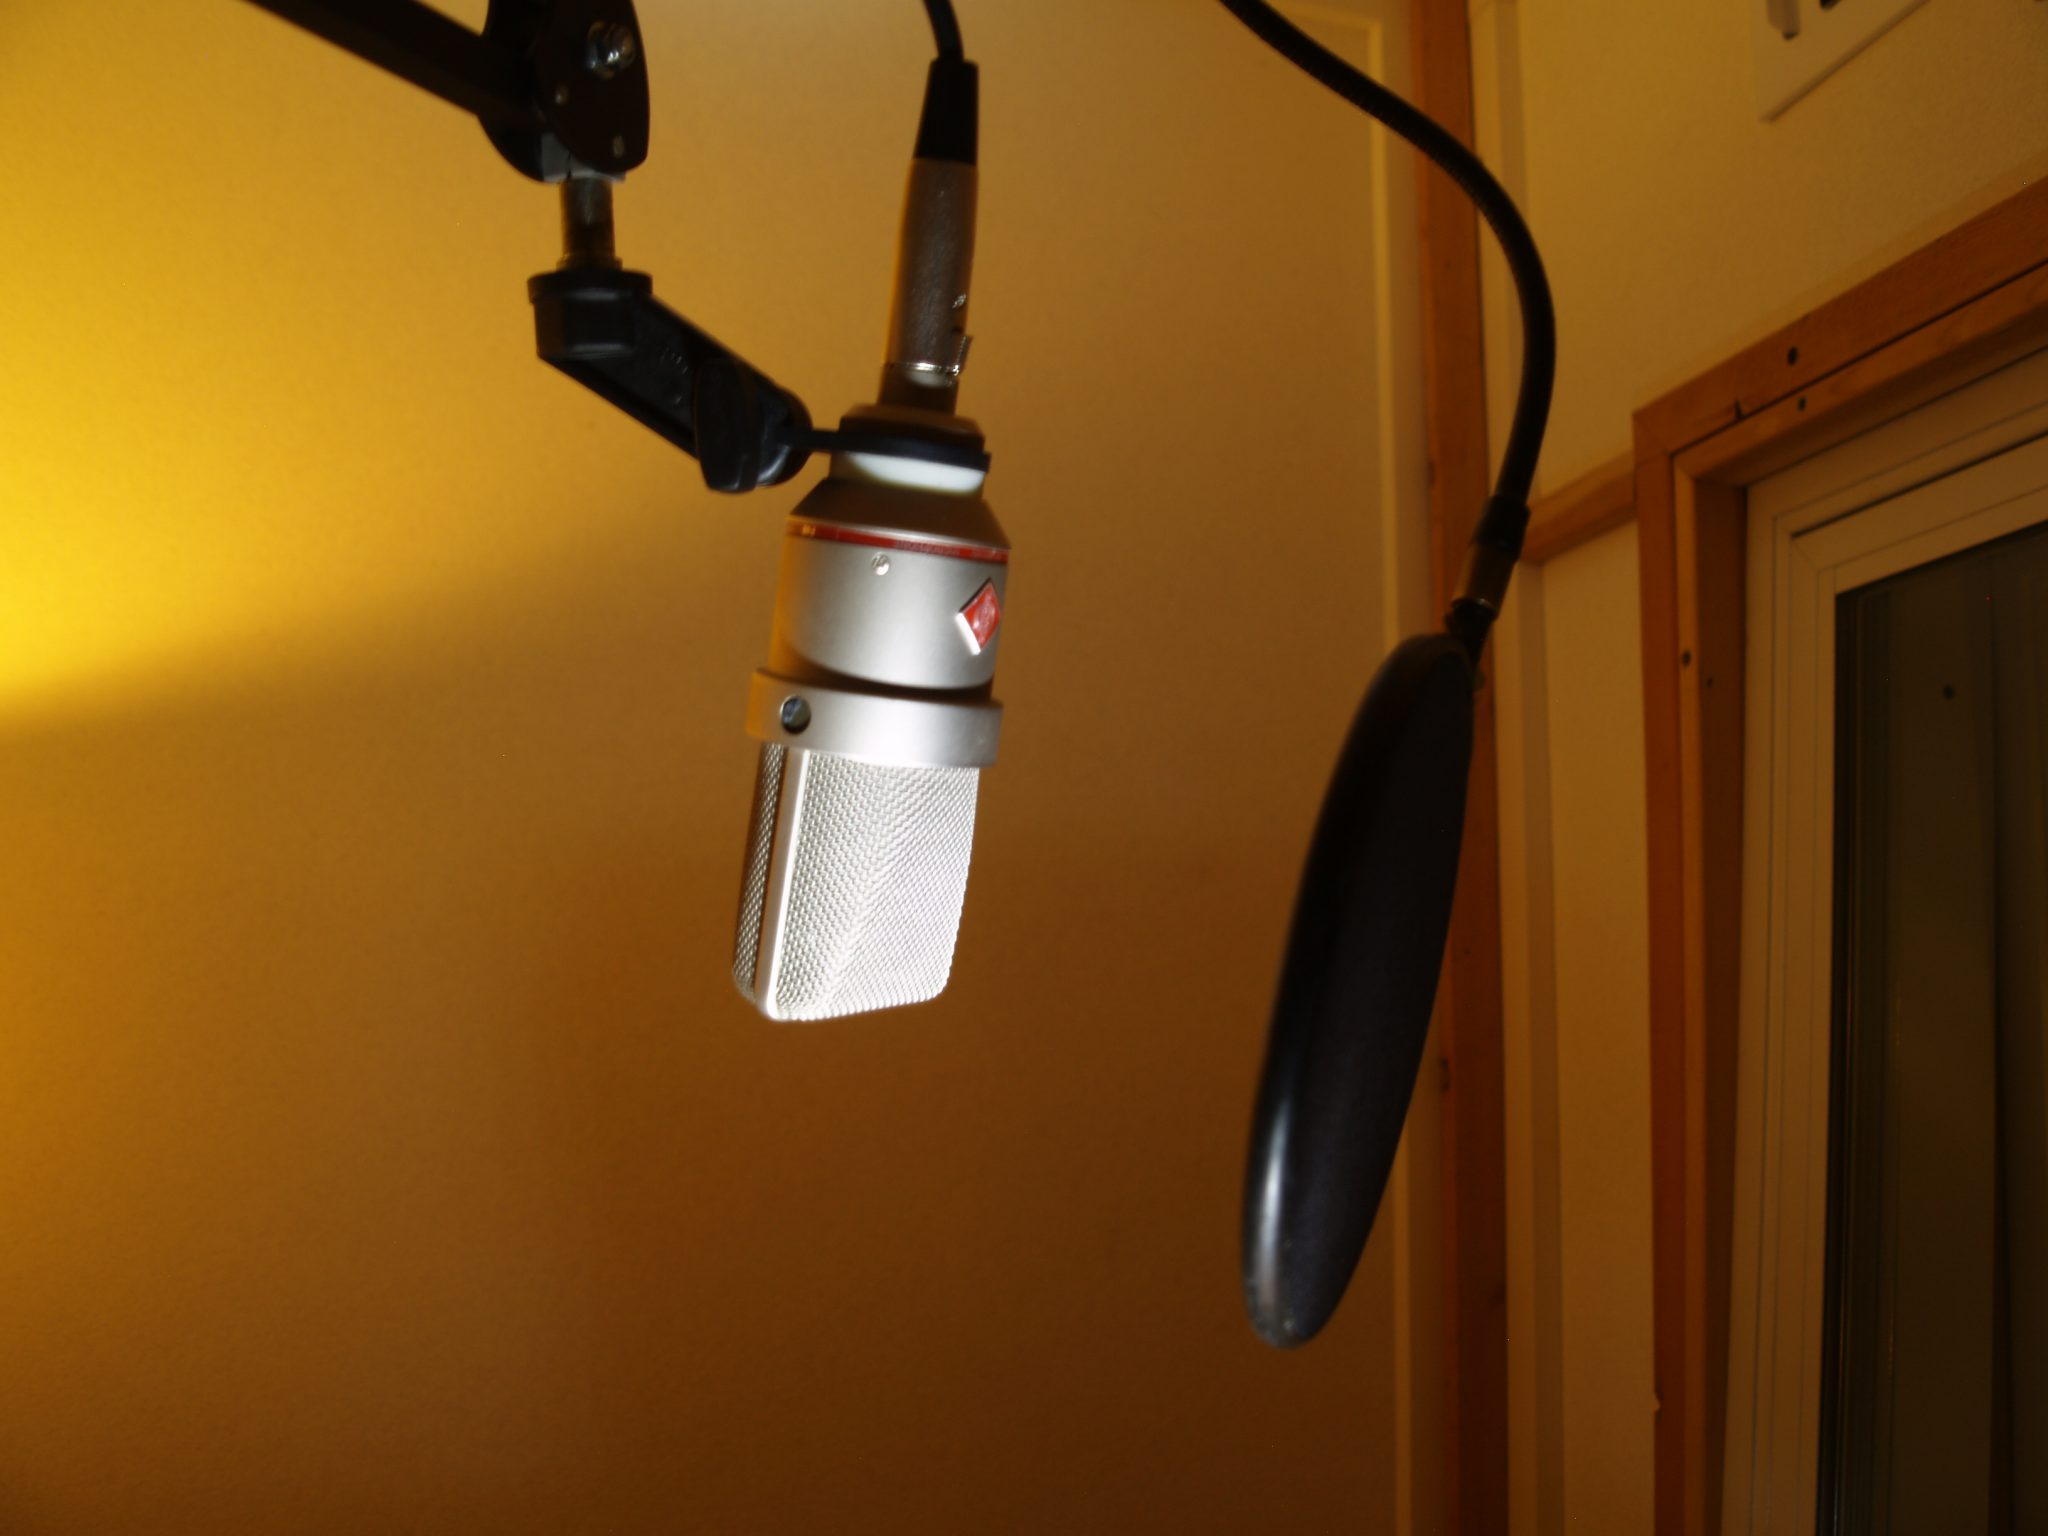 Pop Filter Placement Neumann